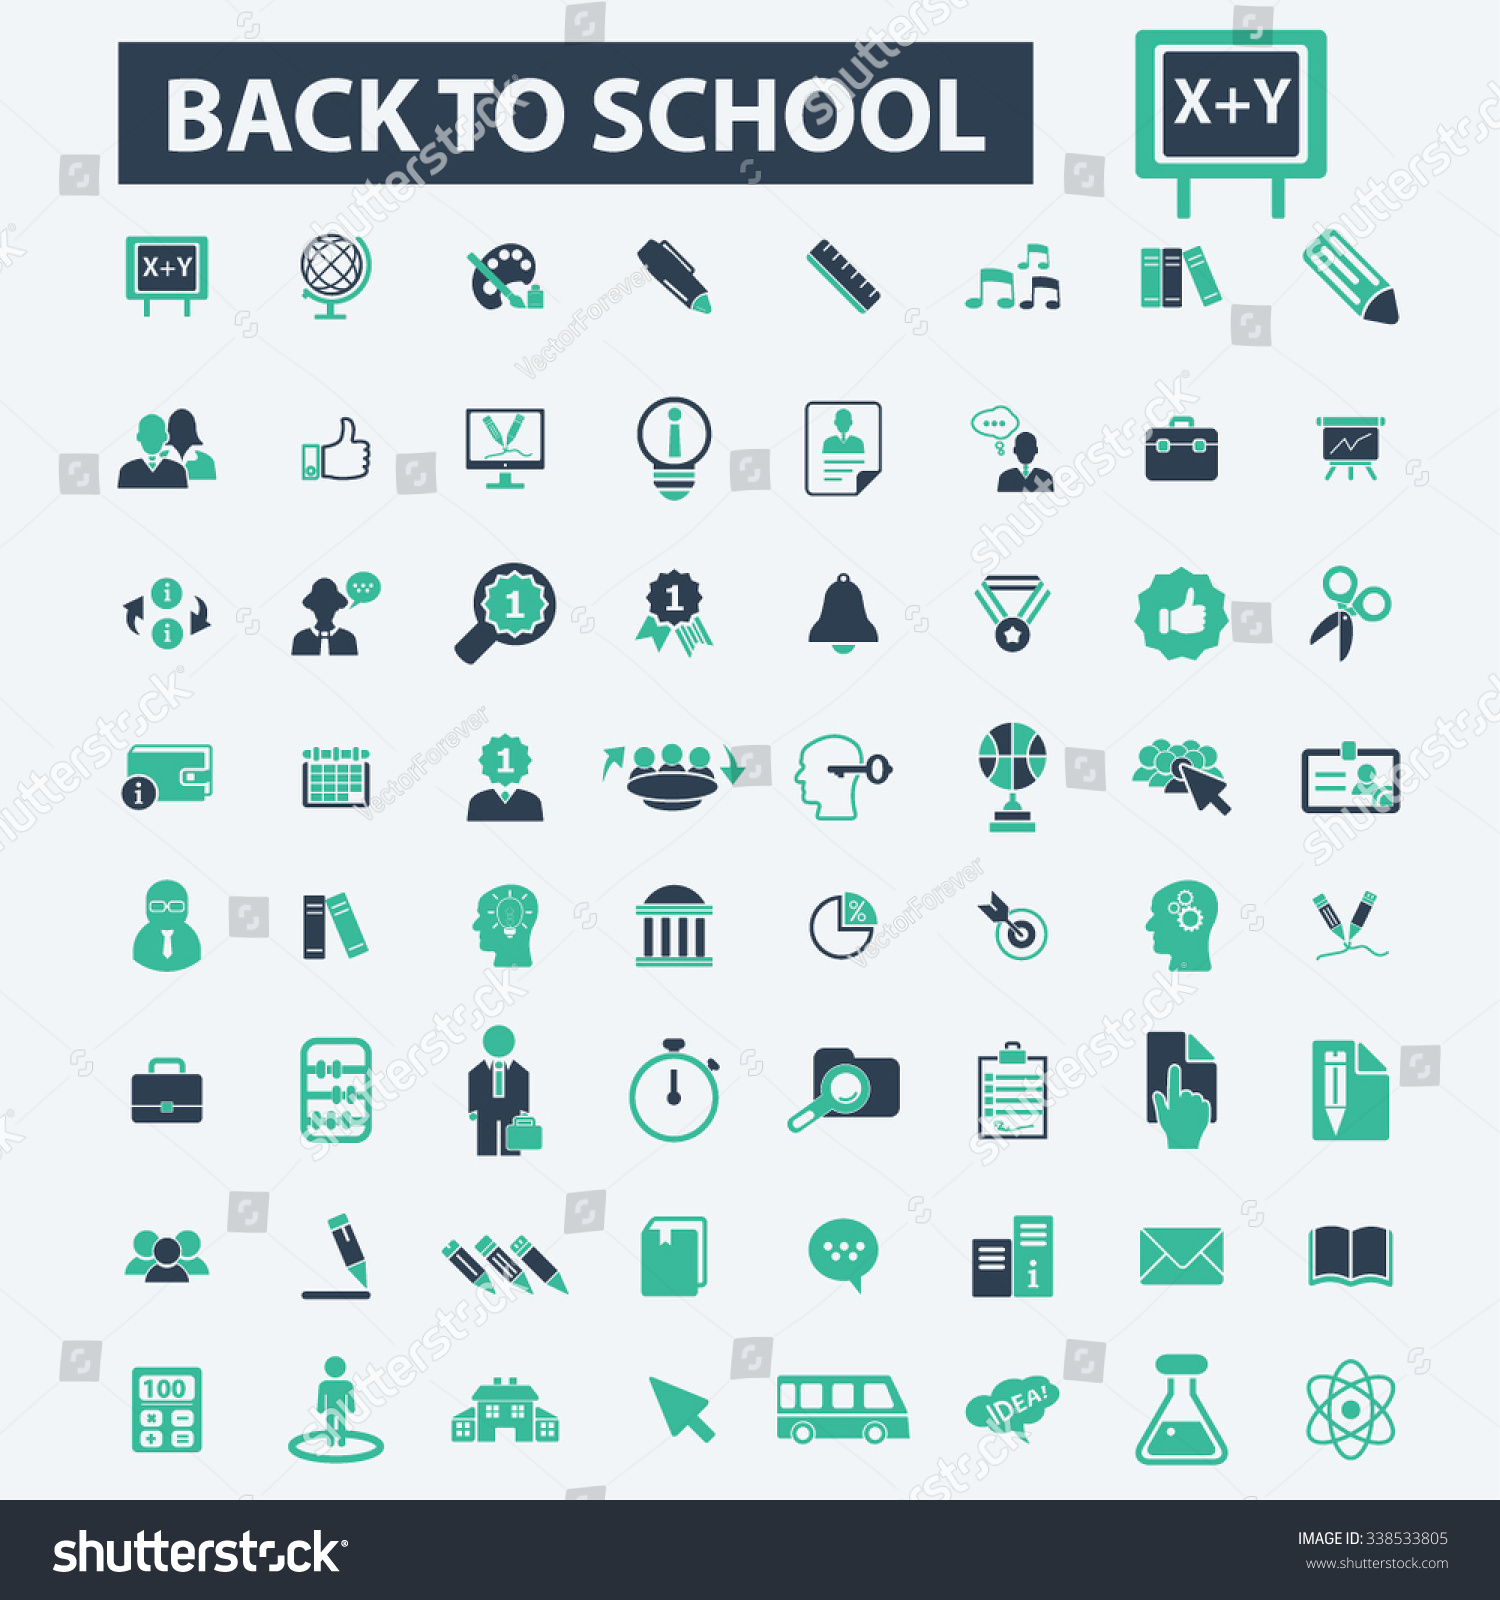 back to school teacher mathematics literature pupil lessons back to school teacher mathematics literature pupil lessons icons signs vector concept set for infographics mobile website application 338533805